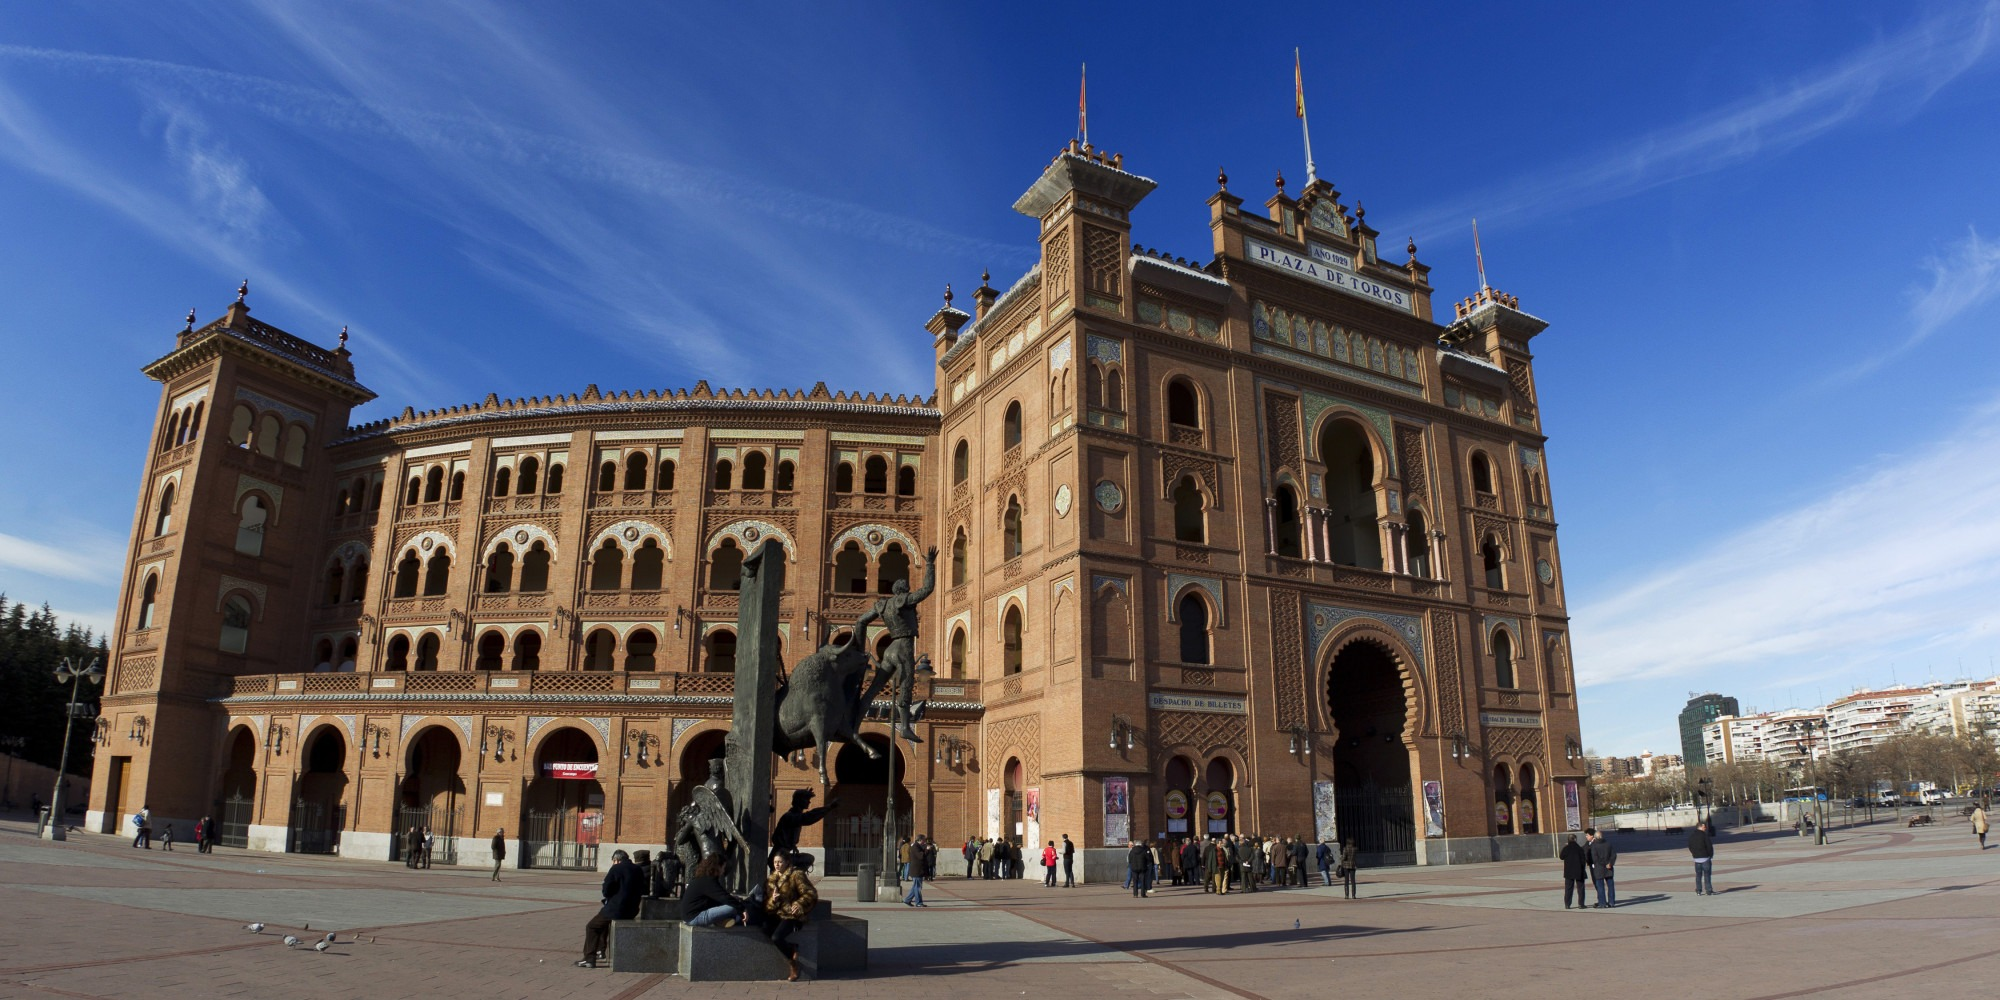 Madrid, Spain. Plaza de toros de Las Ventas.